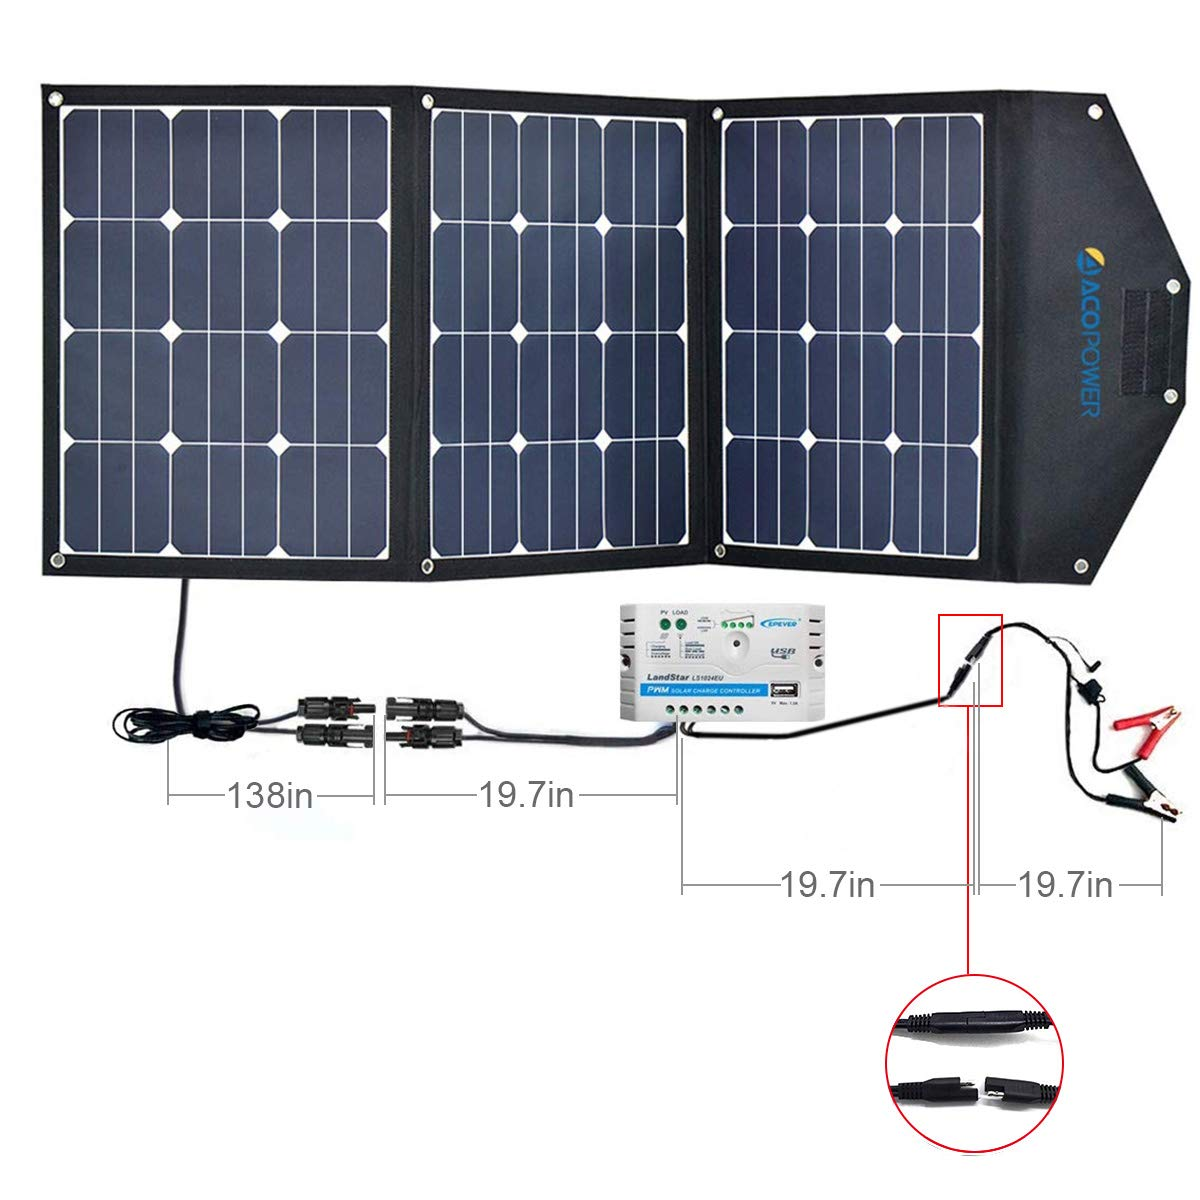 ACOPOWER HY-3x35W18V2 12V 105W Solar Panel Kit w 10A Charge Controller for both RV/Camper Boat Battery and DC Devices by ACOPOWER